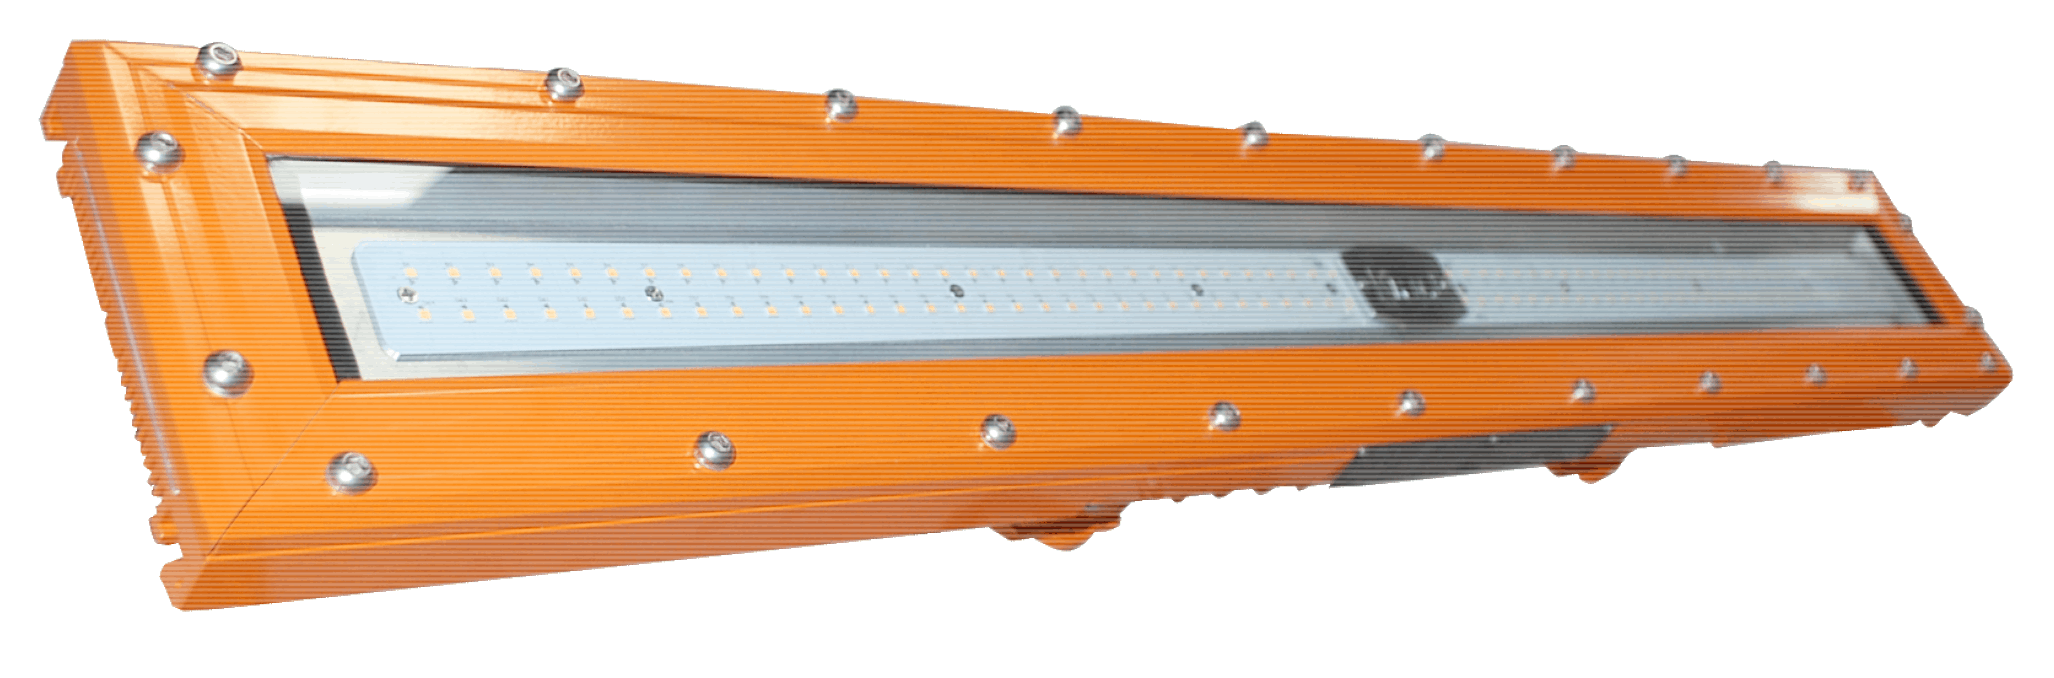 Ex-KSF481200 Luminaire LED Swordfish 48W ATEX Version secourue 180mn